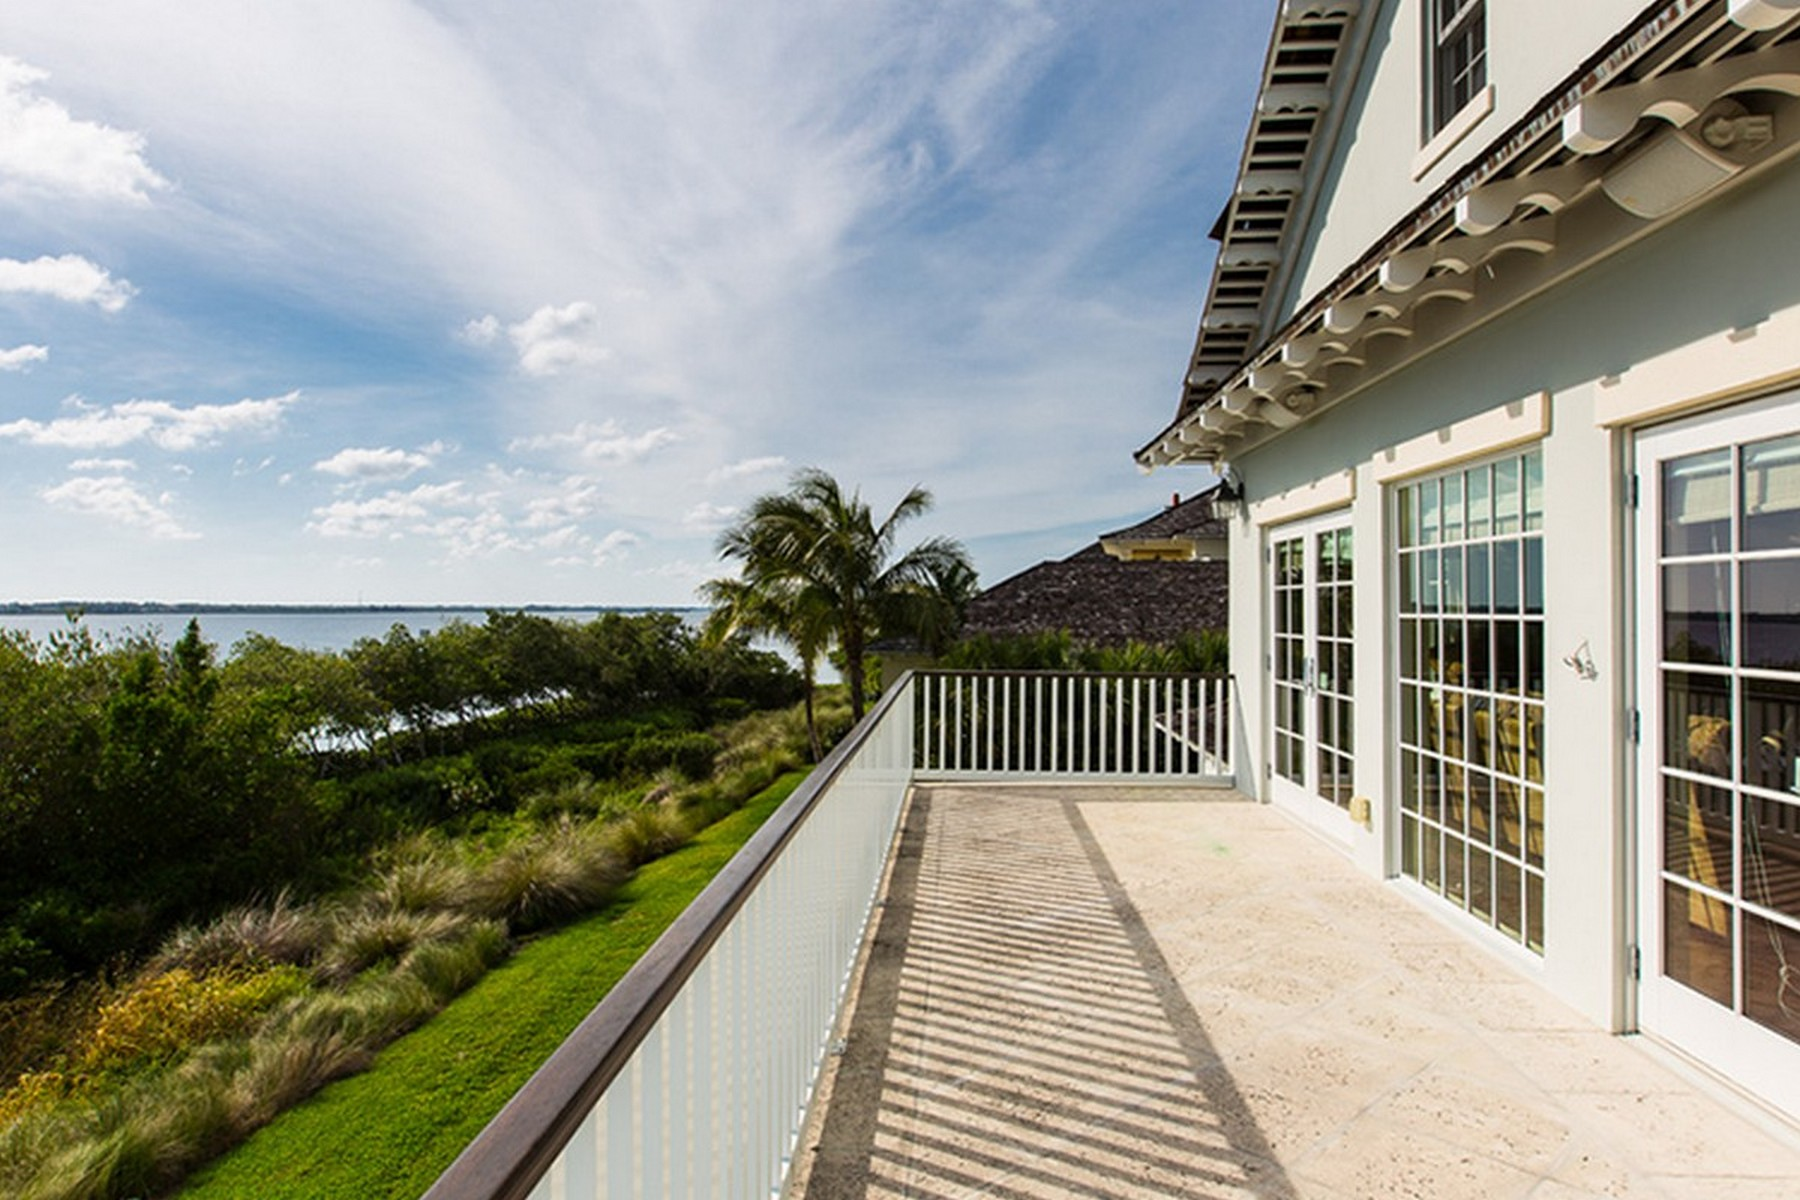 Additional photo for property listing at Marsh Island Riverfront Showplace 9235 W Marsh Island Dr Vero Beach, Florida 32963 United States